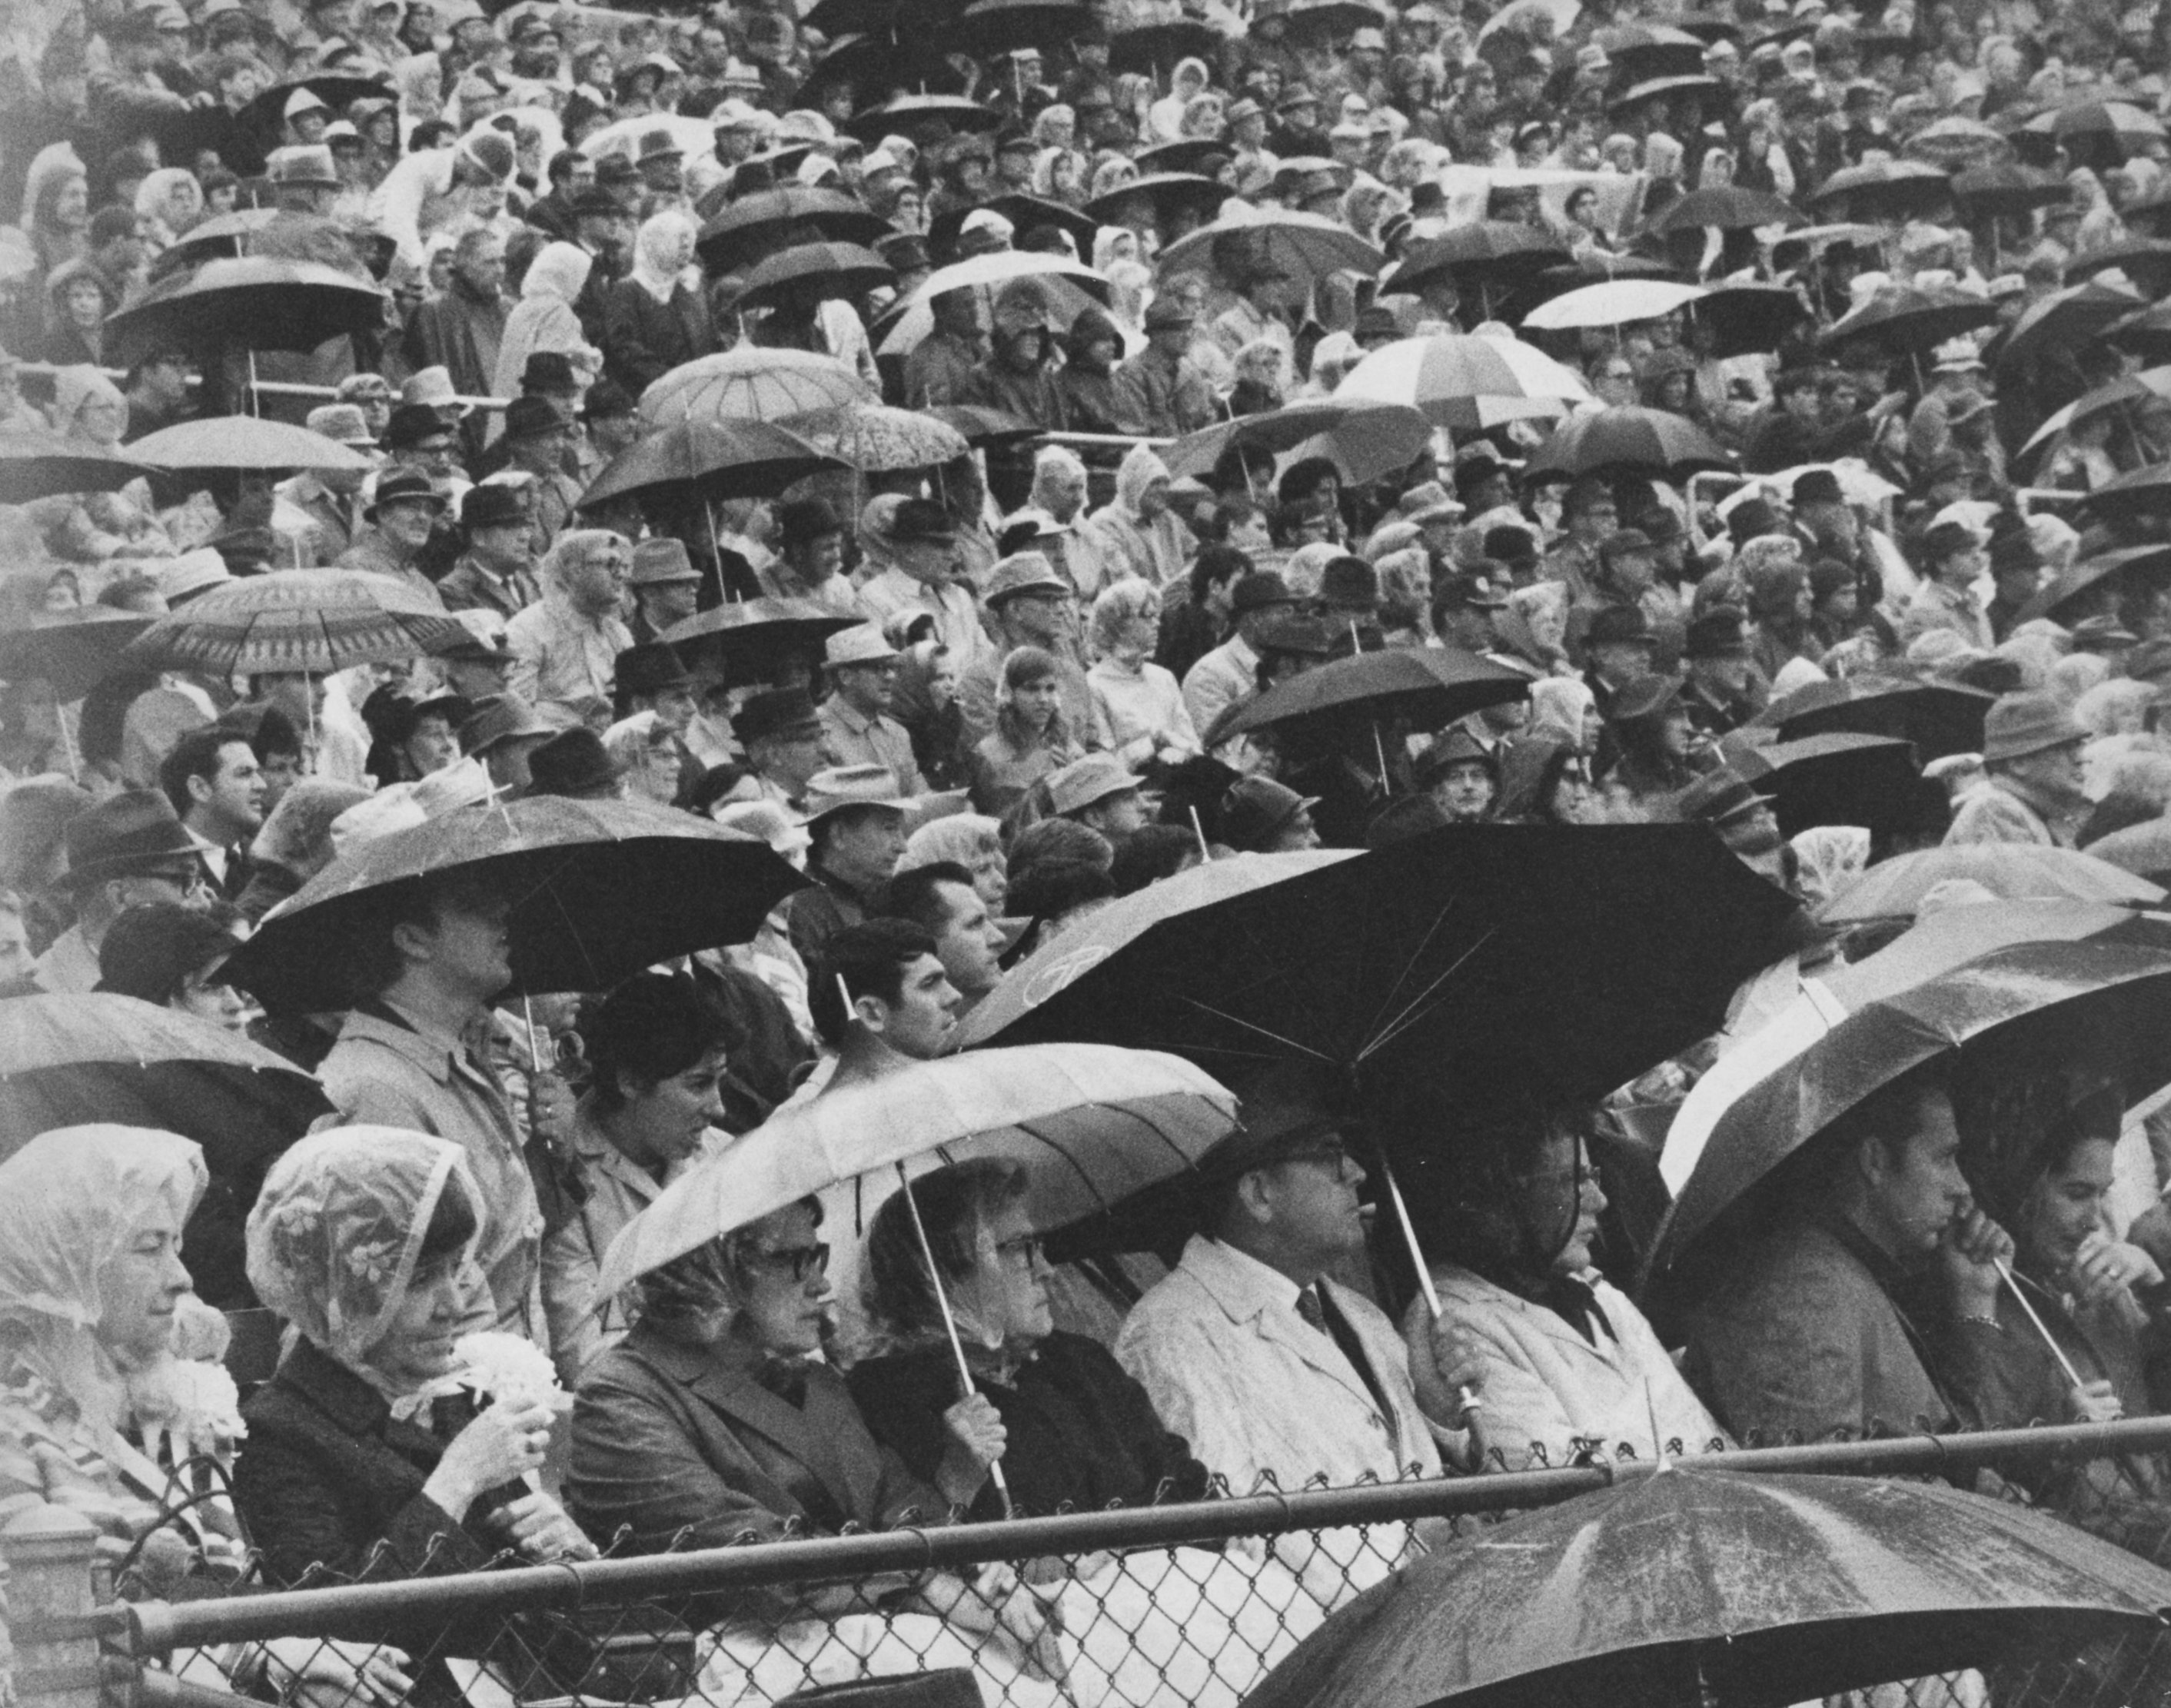 Fans Sitting In Rain At Uk Football Game